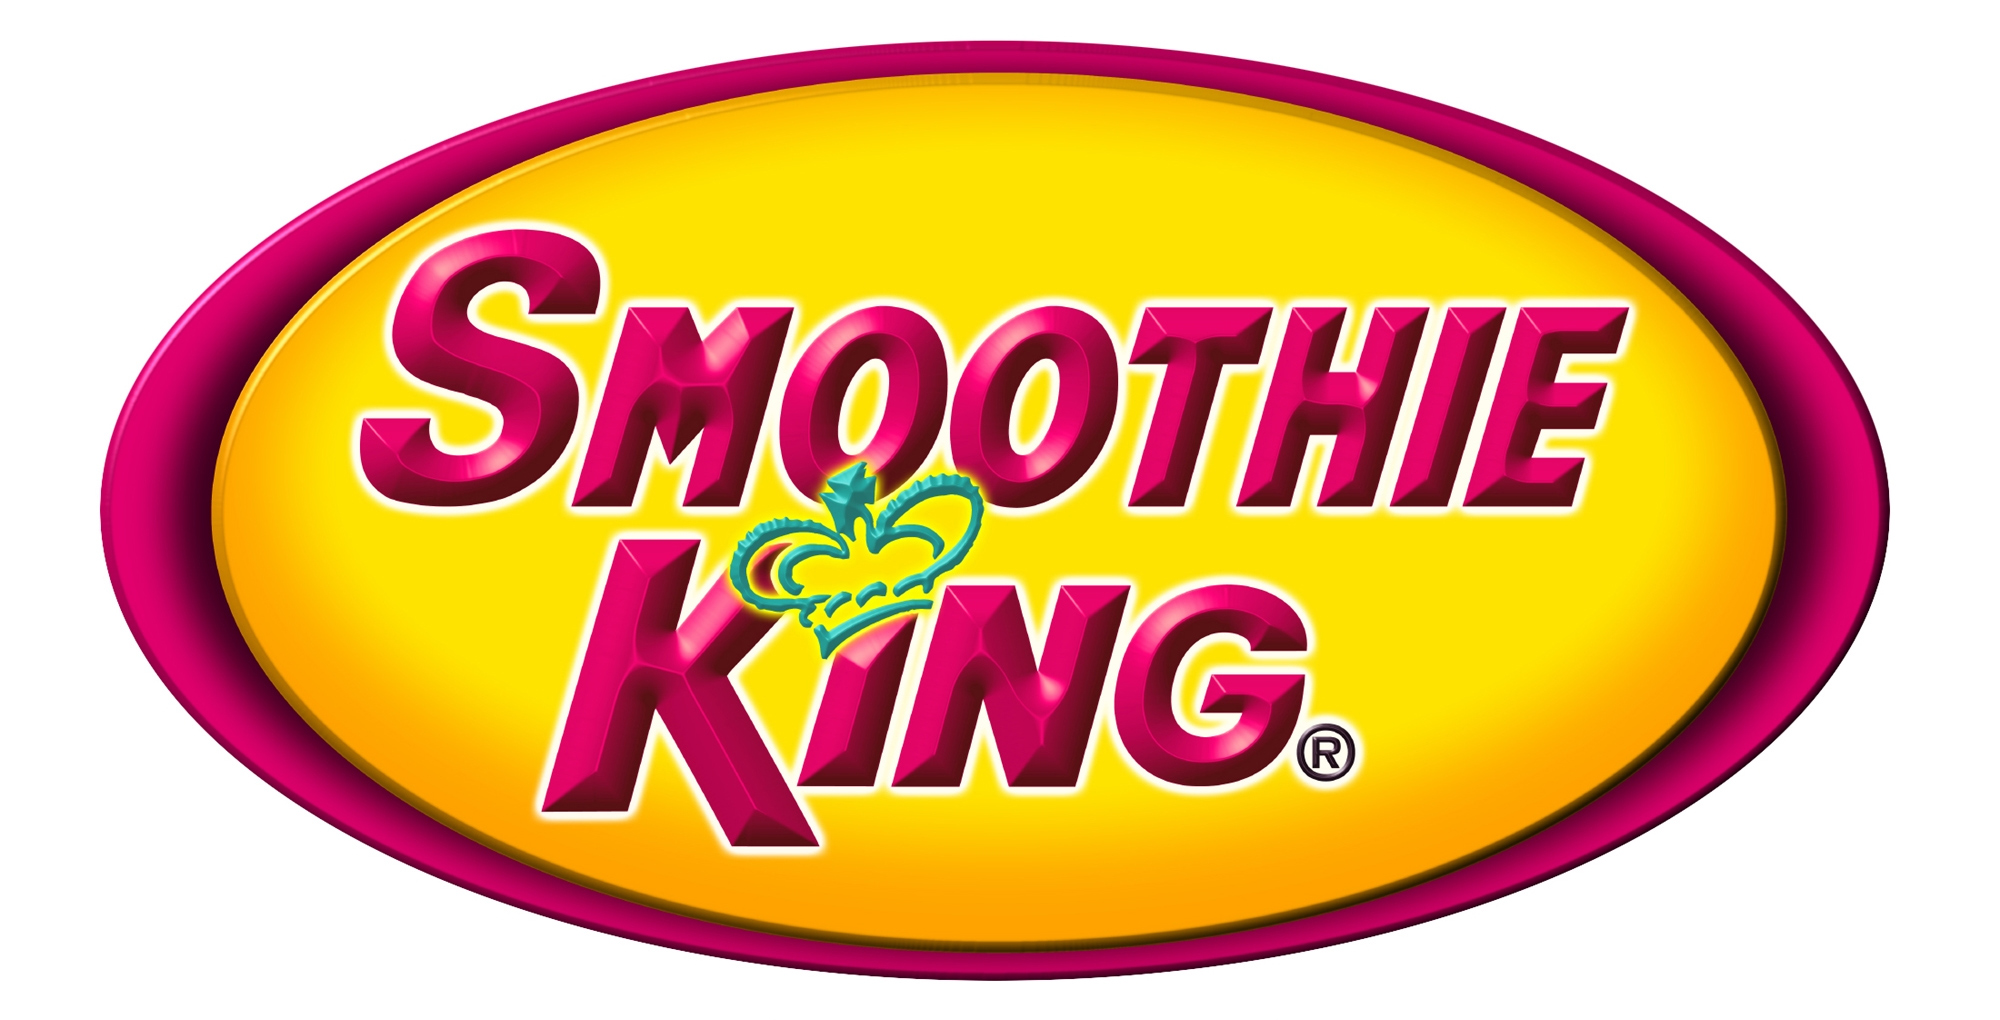 SmoothieKing